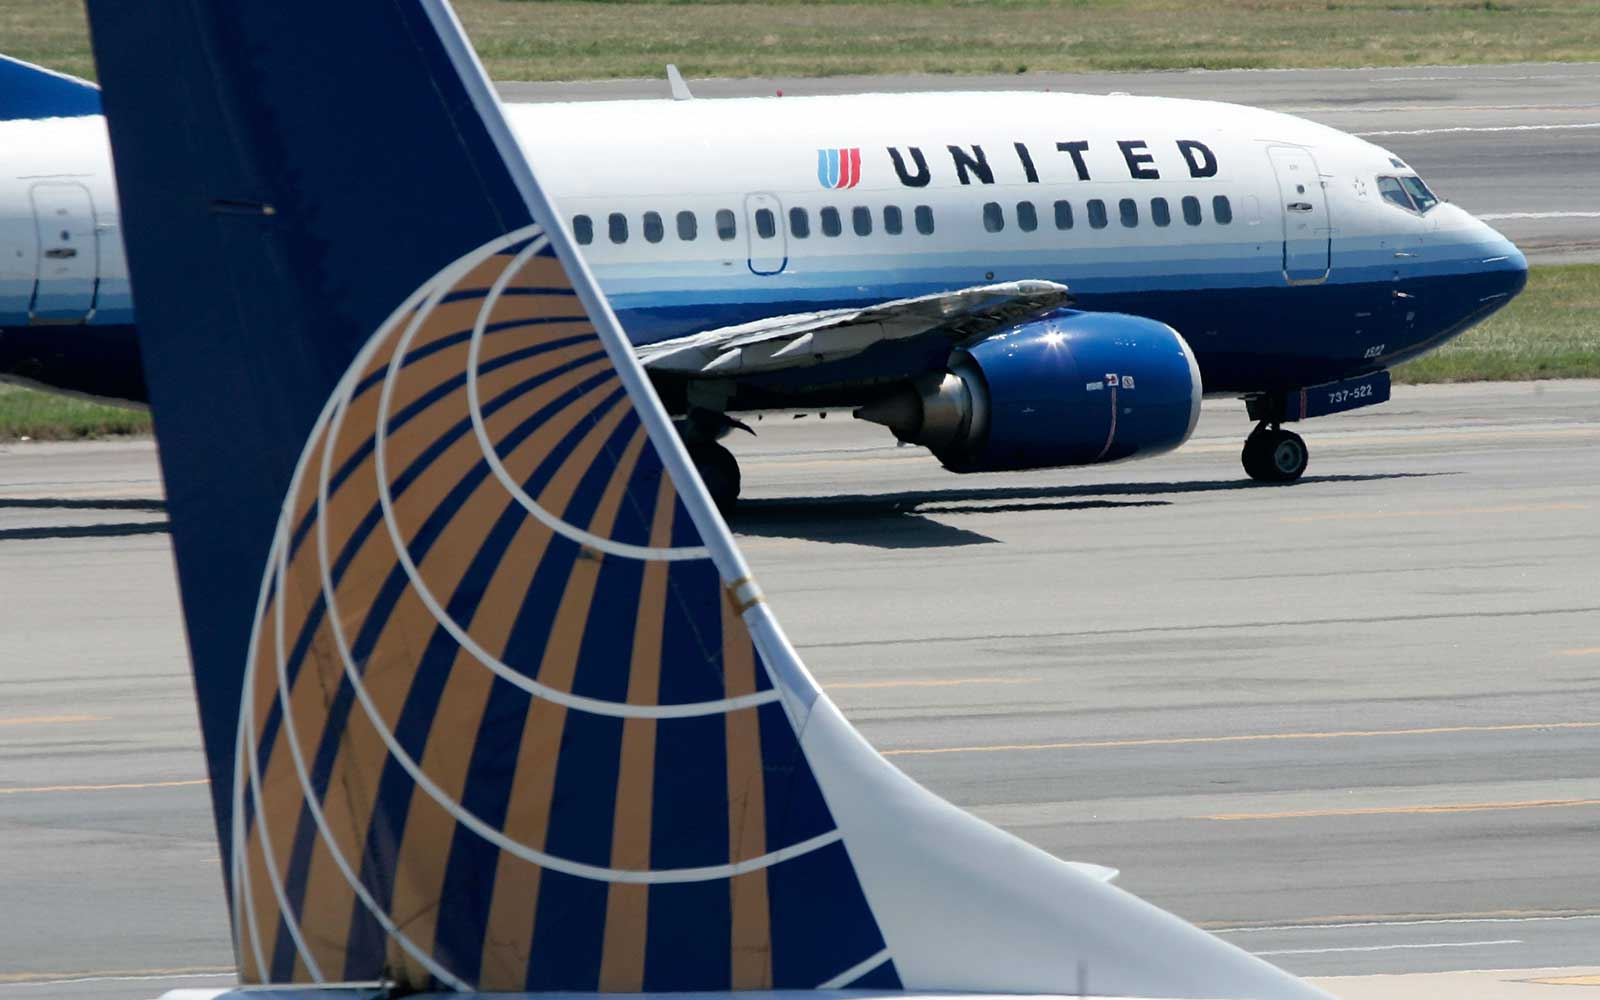 Tires Blow on a United Airlines Plane Landing at Newark Airport